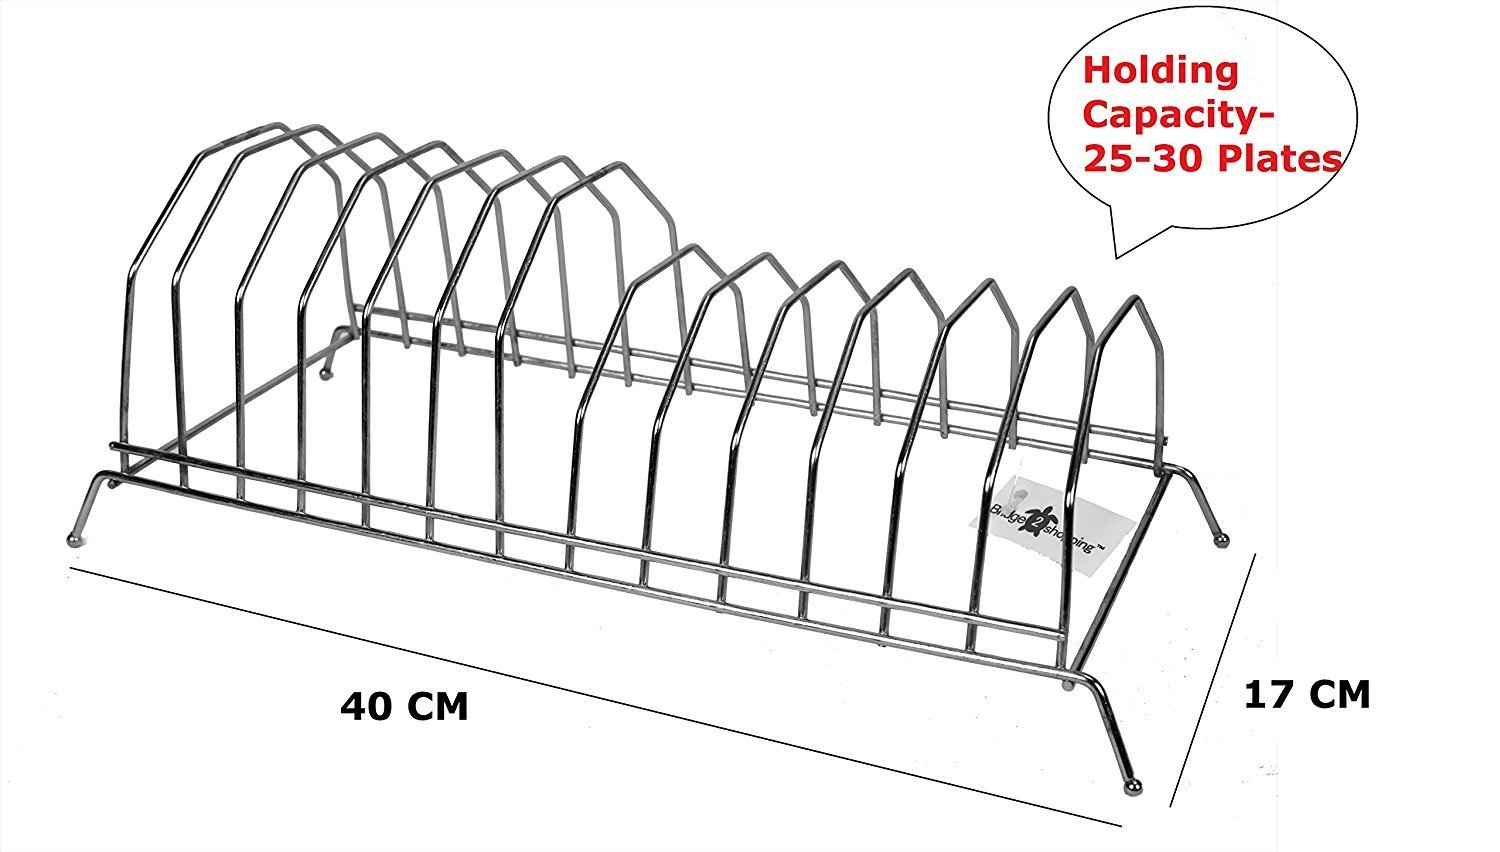 Stainless Steel Plate Stand ...  sc 1 st  Bridge 2 Shopping & Stainless Steel Plate Stand (Utensil Rack) - Bridge 2 Shopping